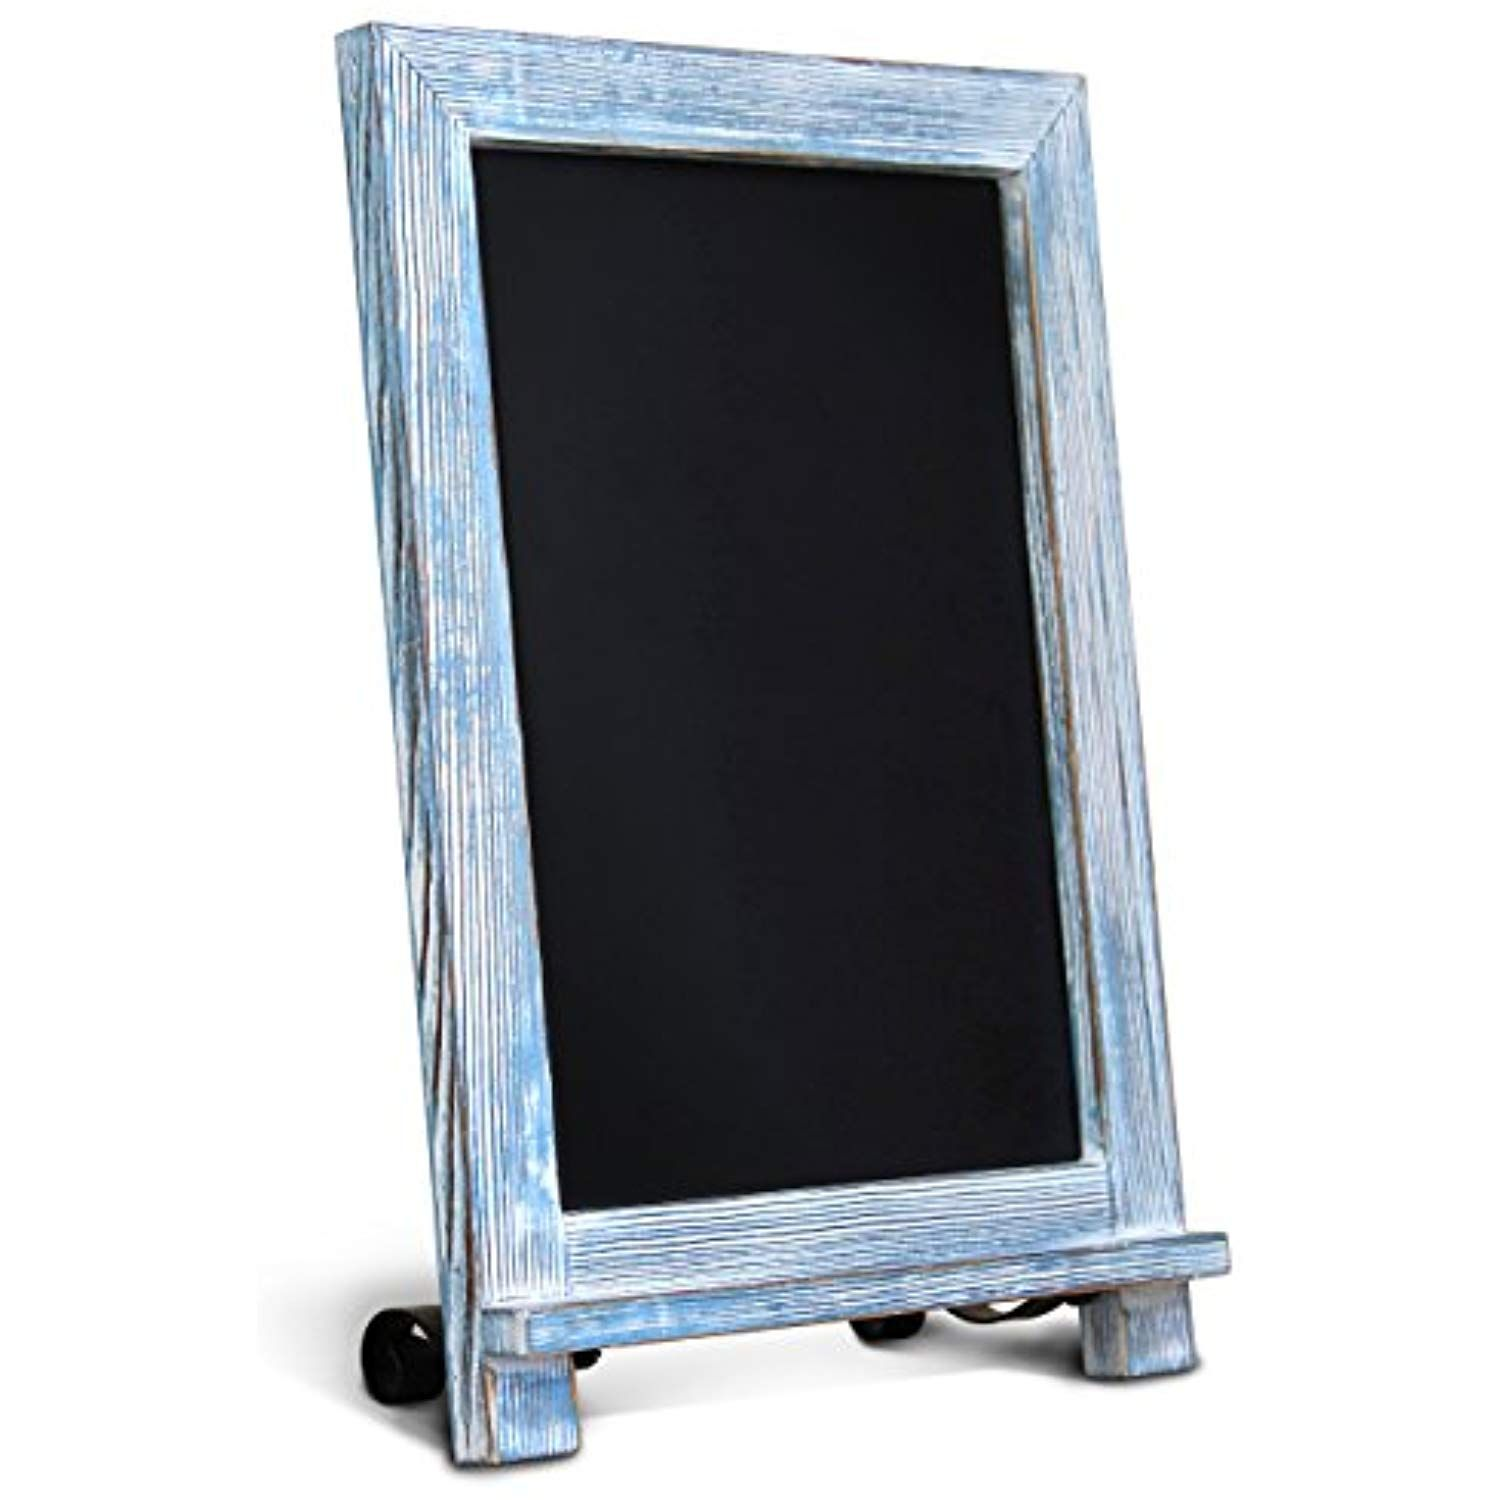 Hbcy Creations Rustic Small Tabletop Chalkboard Sign Hanging Magnetic Wall Chalkboard Countertop Chalkboard Easel Kitchen Hanging Signs Magnetic Wall Blue Wood